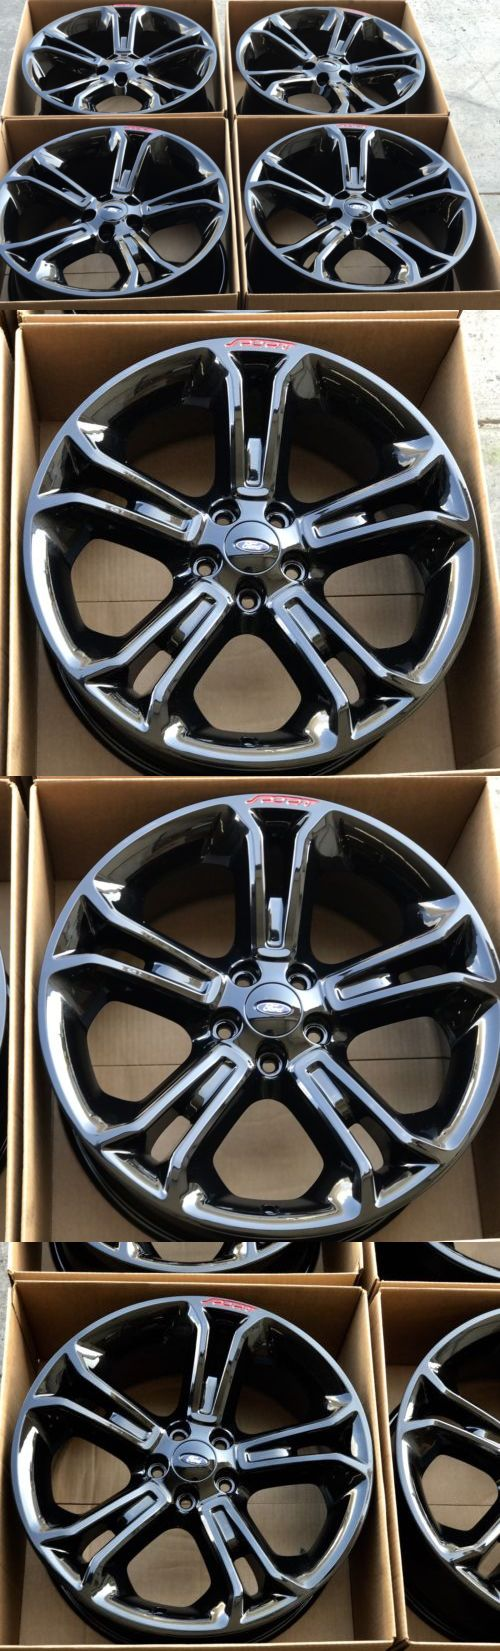 auto parts - general: 20 Ford Explorer Sport Black Wheels Rims Factory Oem 2014 2015 2016 3949 -> BUY IT NOW ONLY: $1495 on eBay!